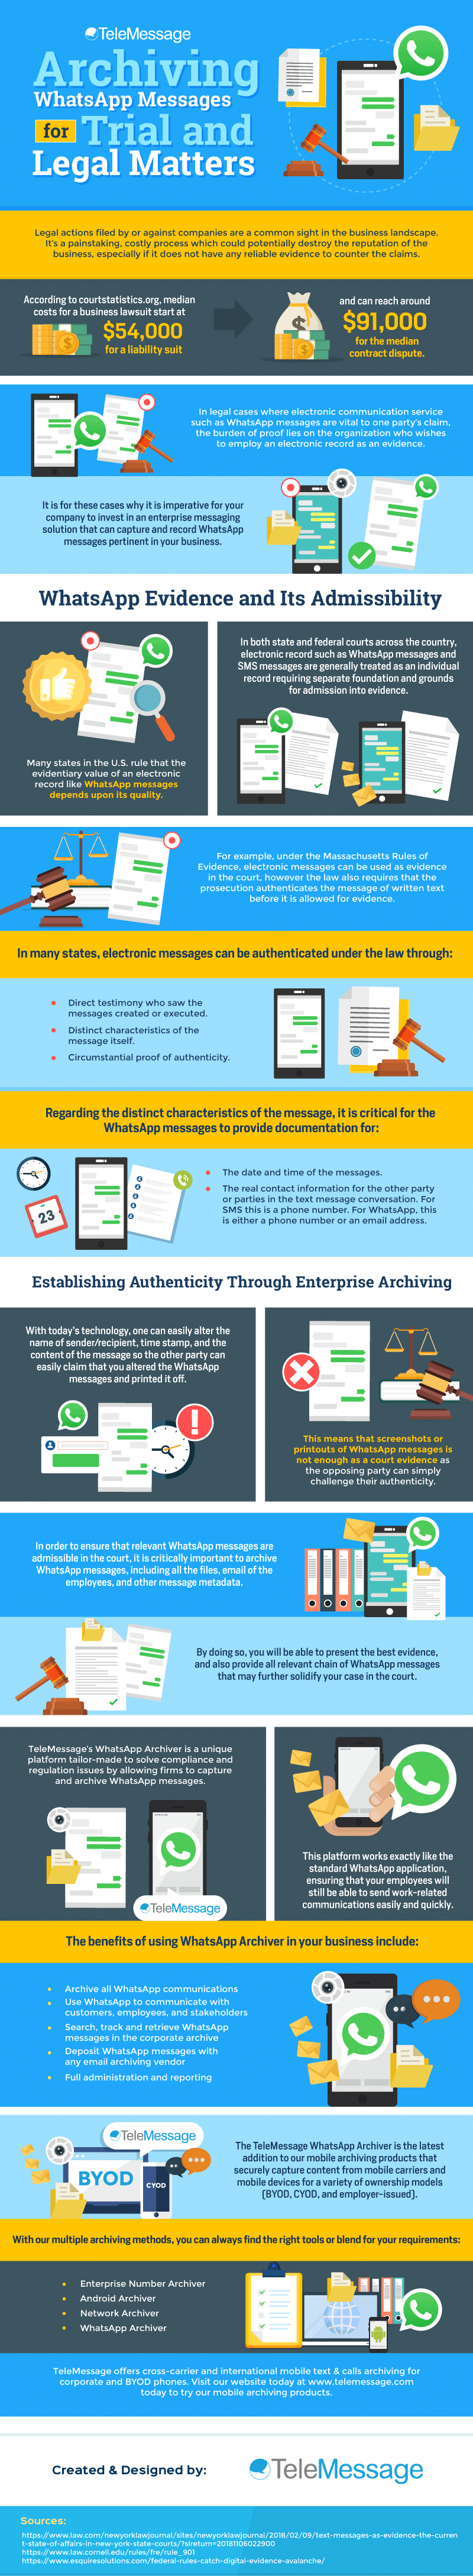 Archiving-WhatsApp-Messages-for-Trial-and-Legal-Matters